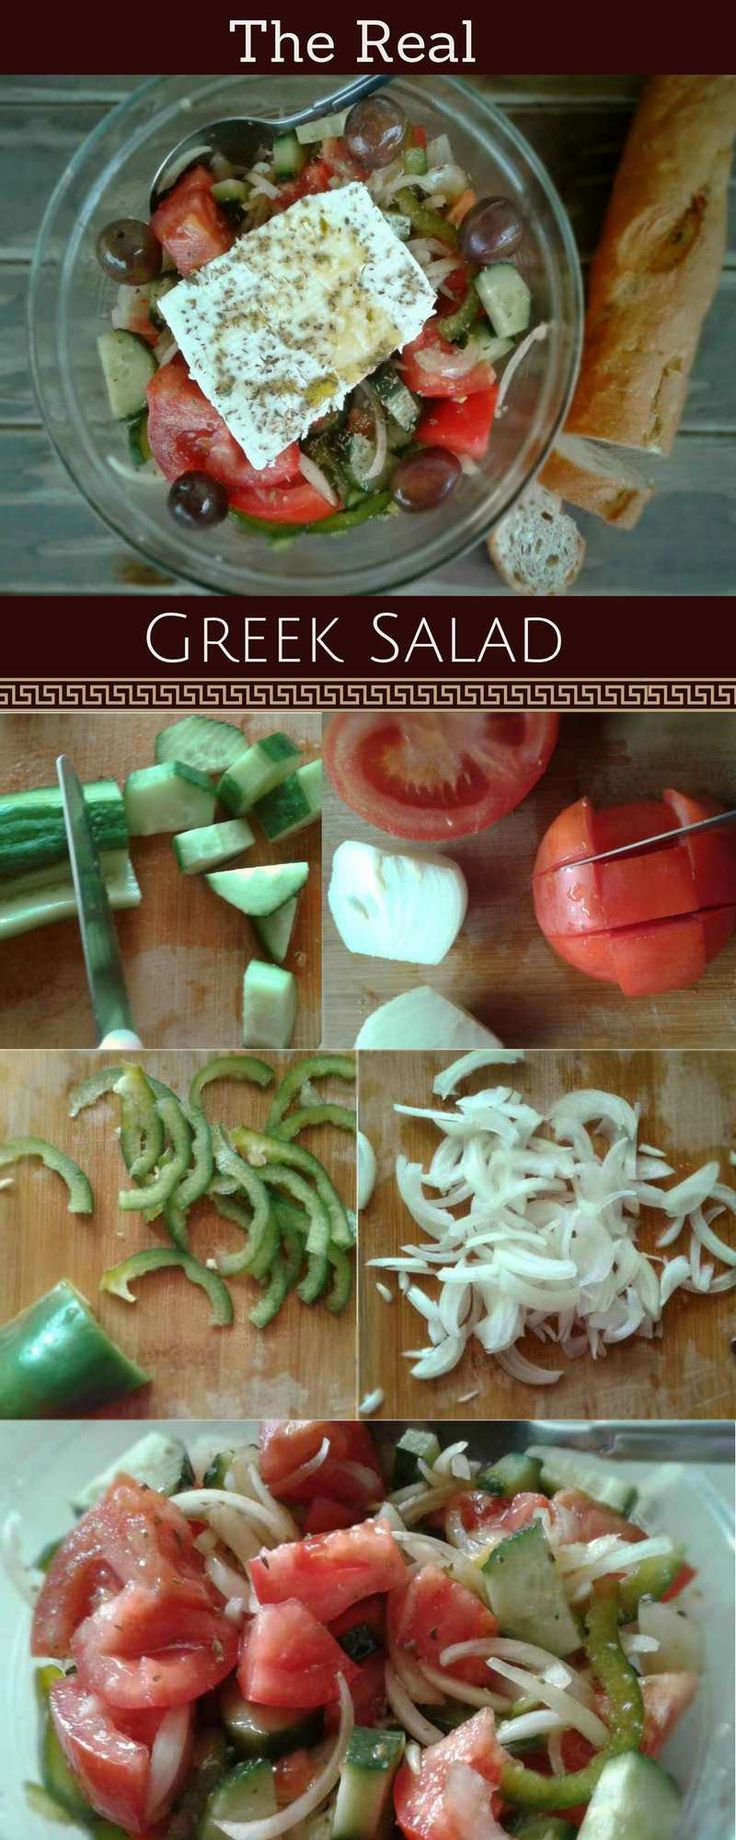 Here's how to make a Greek salad like a Greek. It's much more simple than you can imagine. Got any spare extra ripe and sweet tomatoes? #greekfood #greeksalad #appetizer #recipe #tomatoes #salad